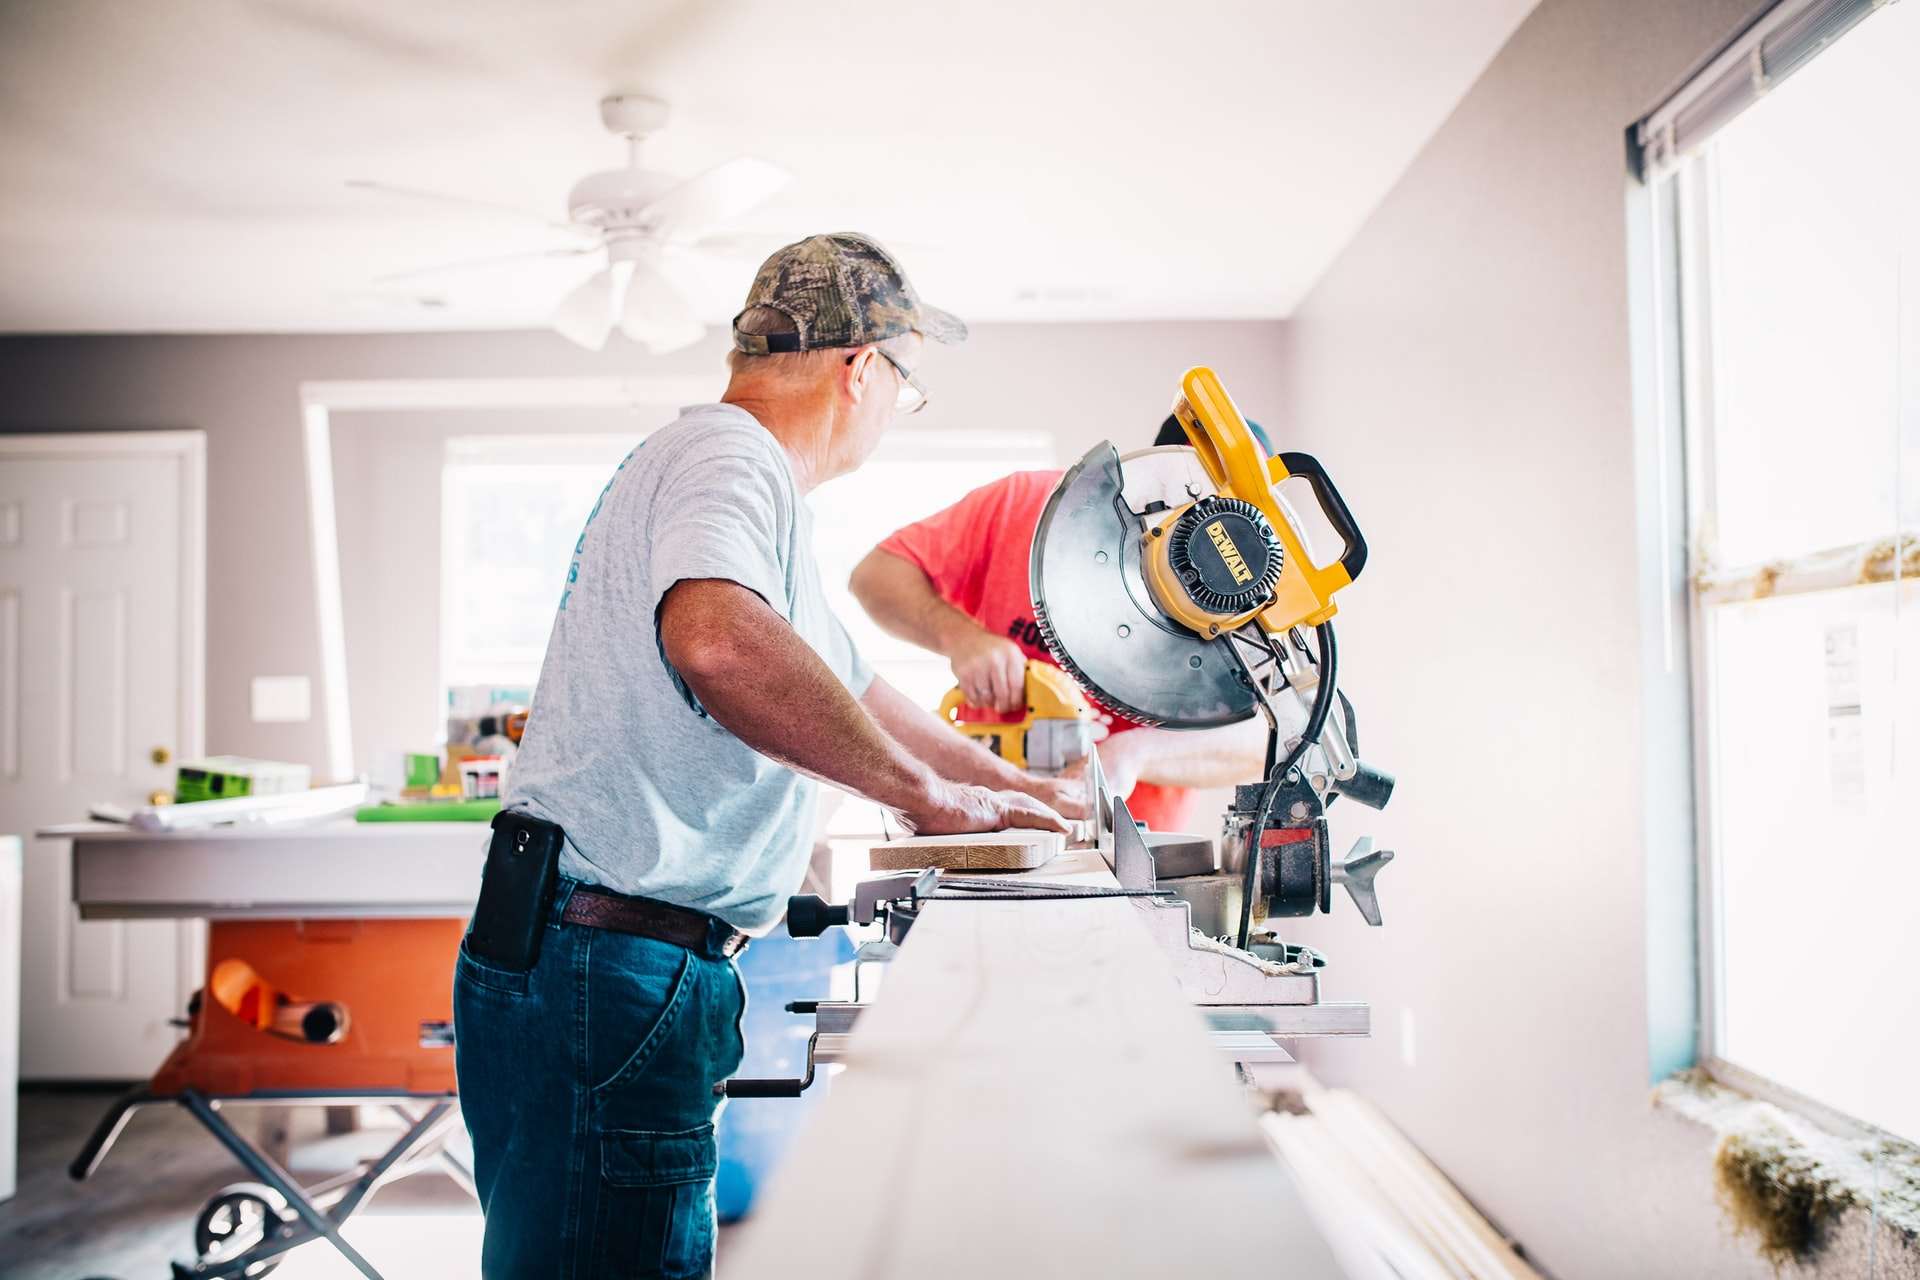 Man cutting a piece of wood with a saw